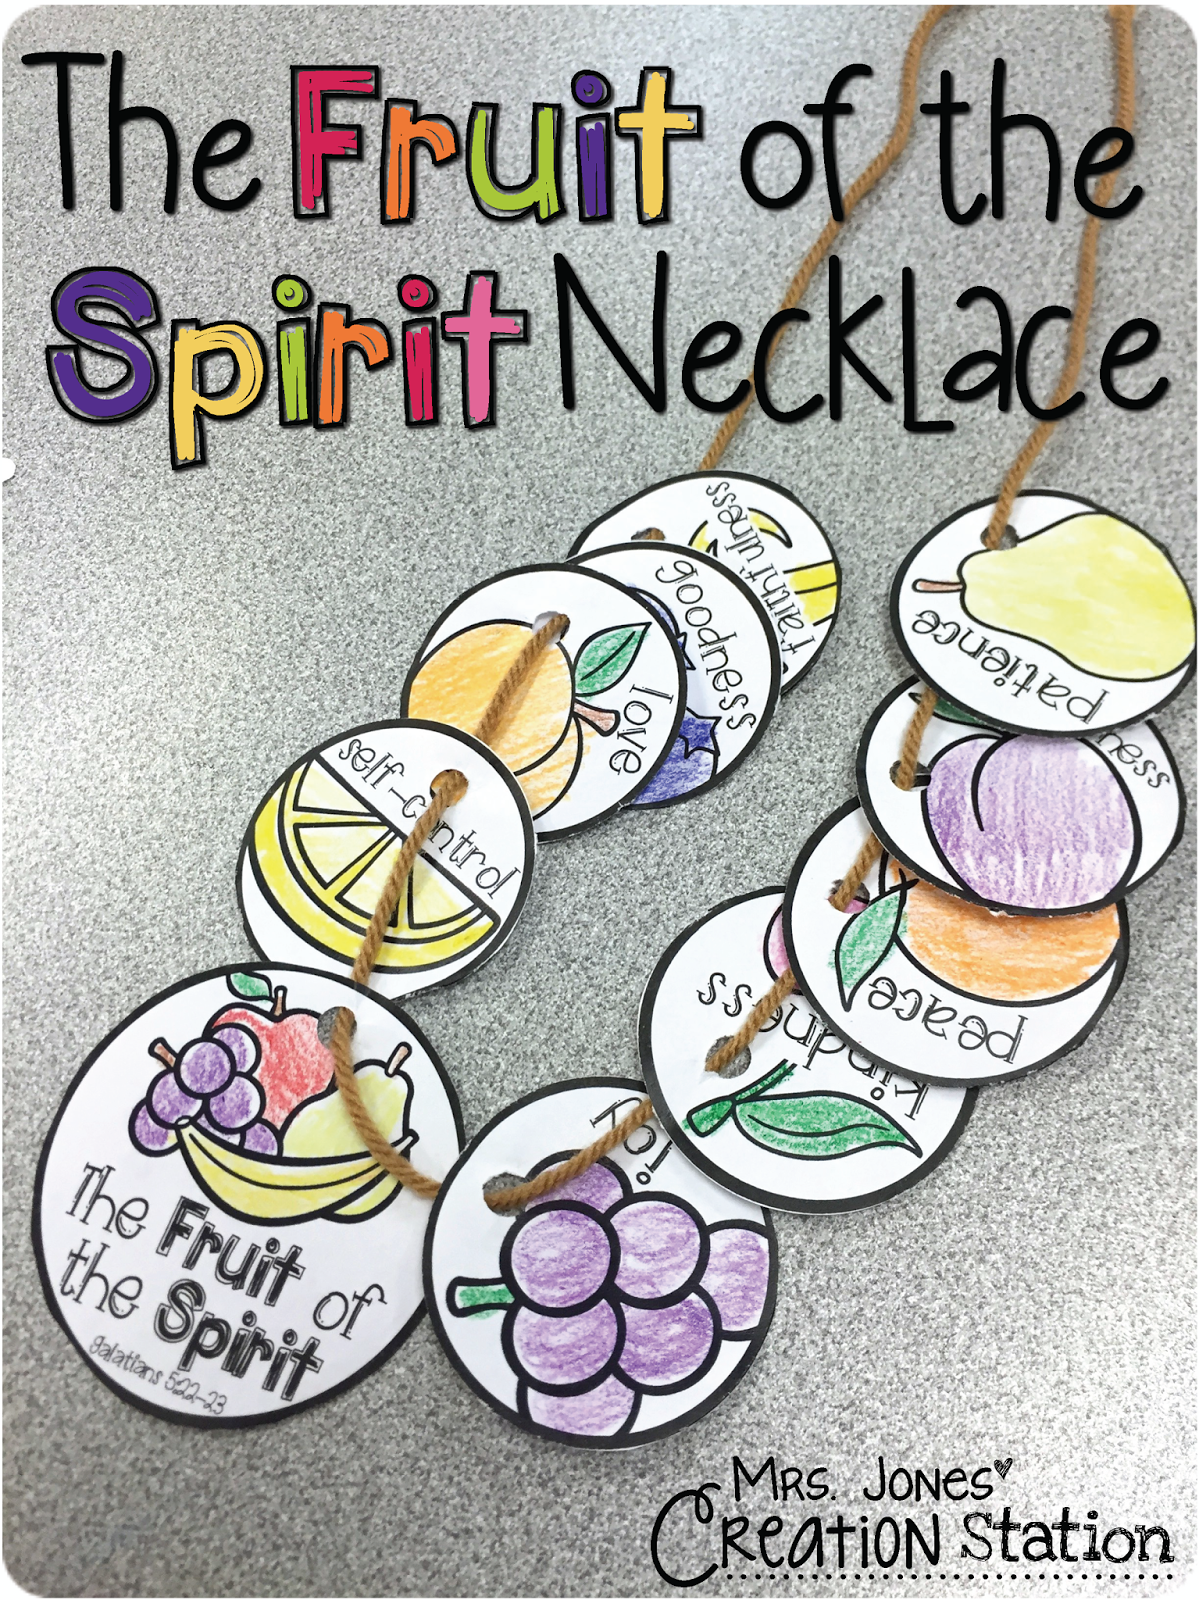 Childrens coloring pages for the fruits of the spirit - The Fruit Of The Spirit Necklace